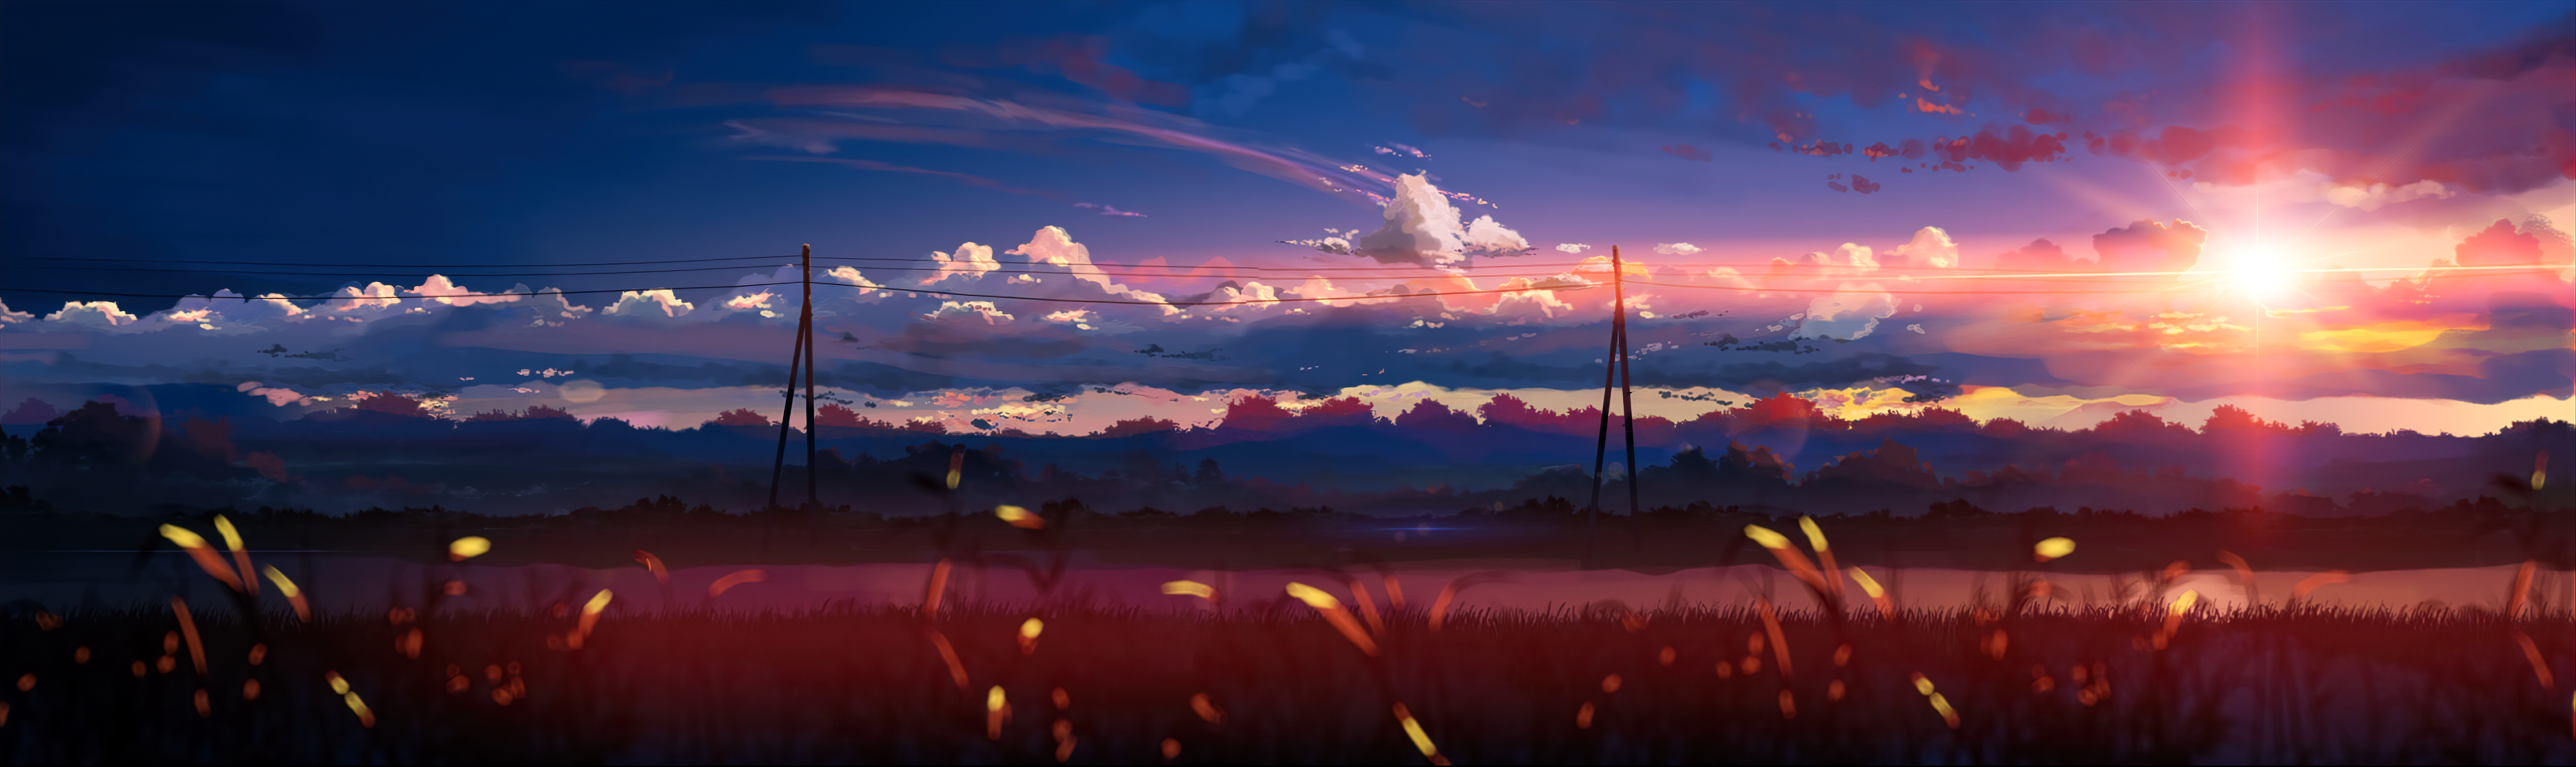 Roadway Panorama 5 Centimeters Per Second 3840x2160 Wallpapers